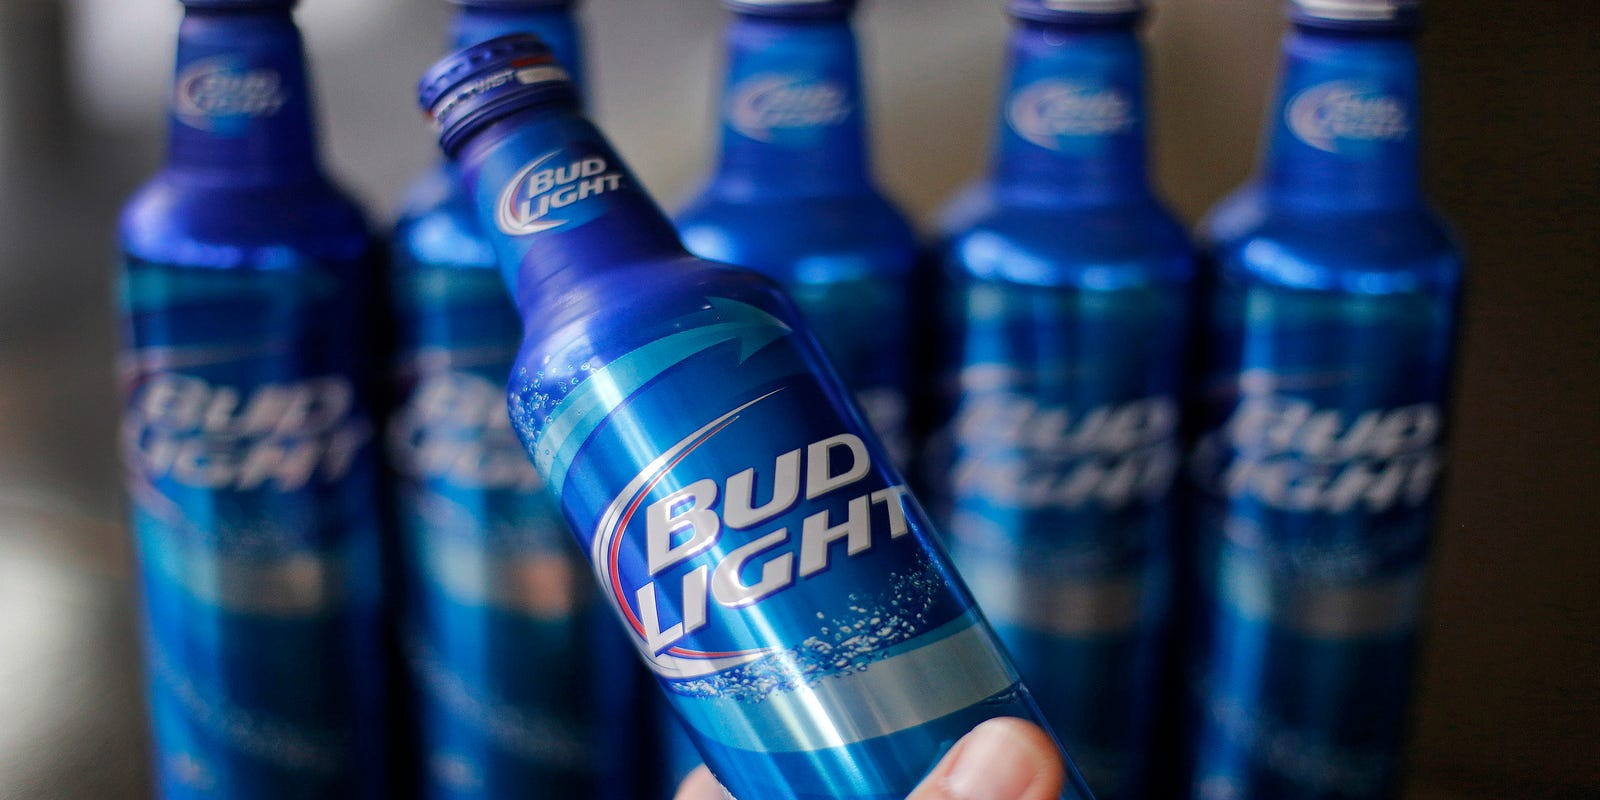 Bud lights super bowl commercial introduces us to the bud knight aloadofball Choice Image